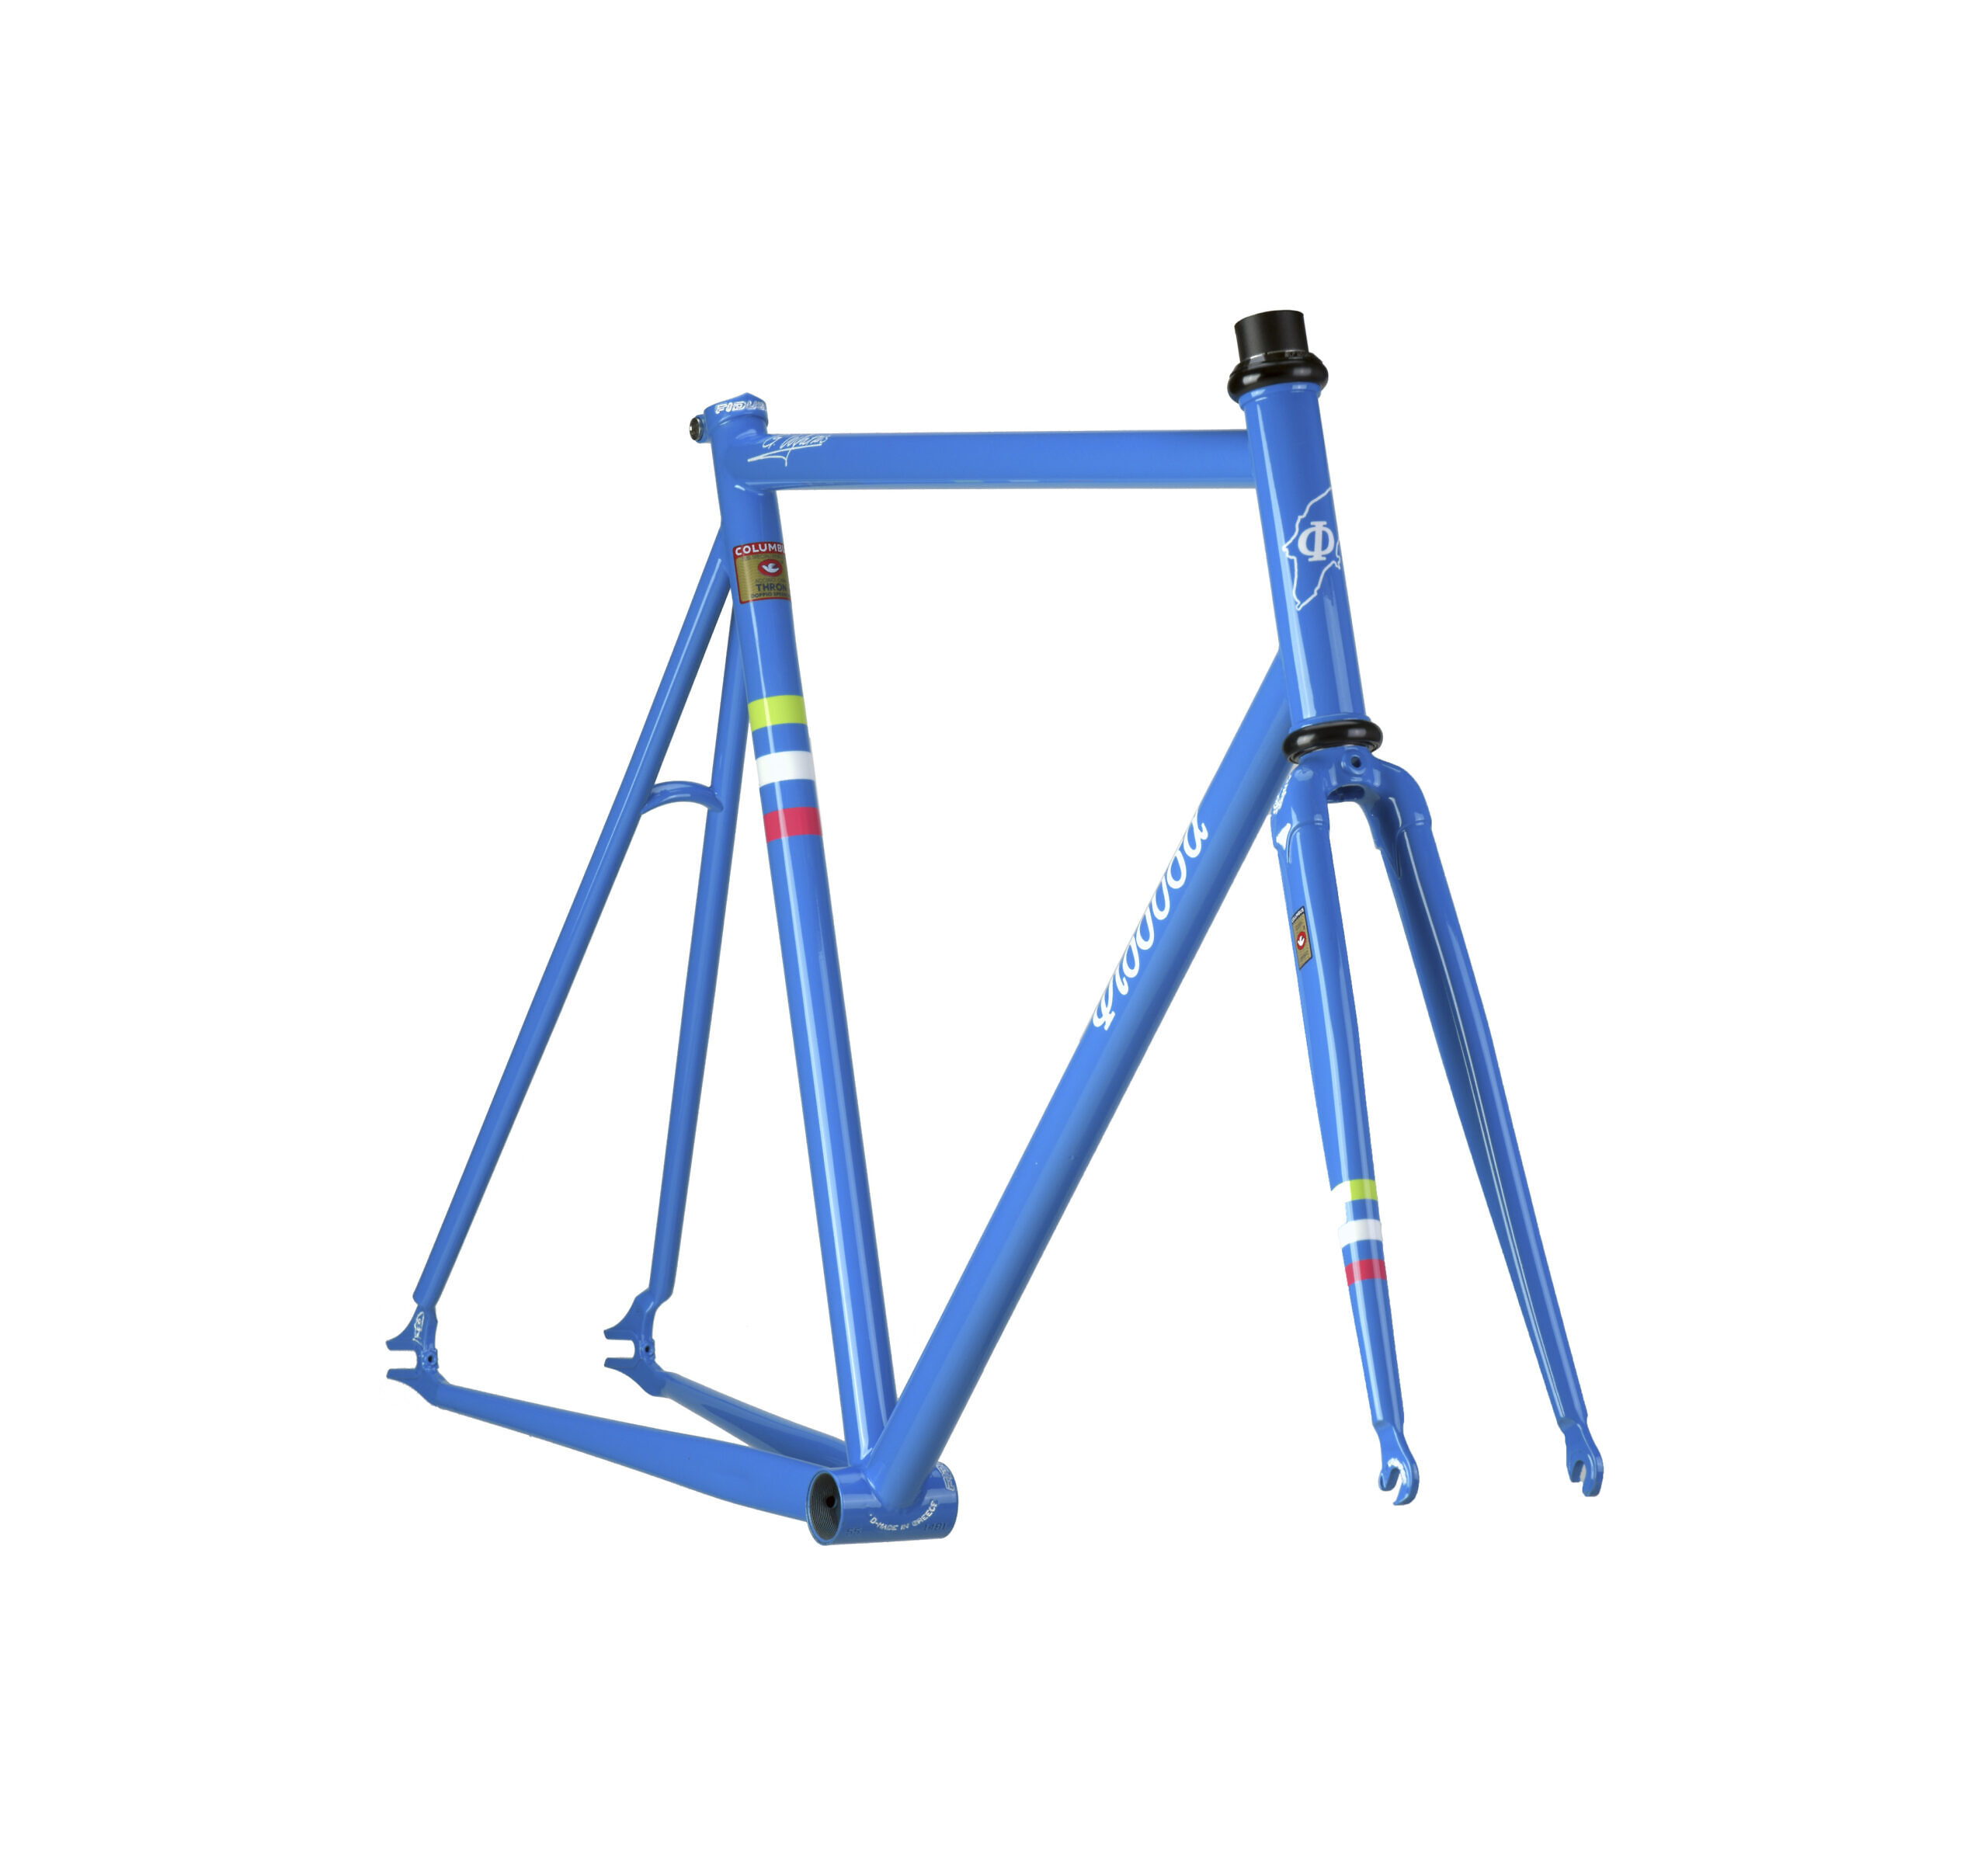 Front-foto-Tom-Frame-clear-scaled Tom's Cro-Moly Single Speed Frame